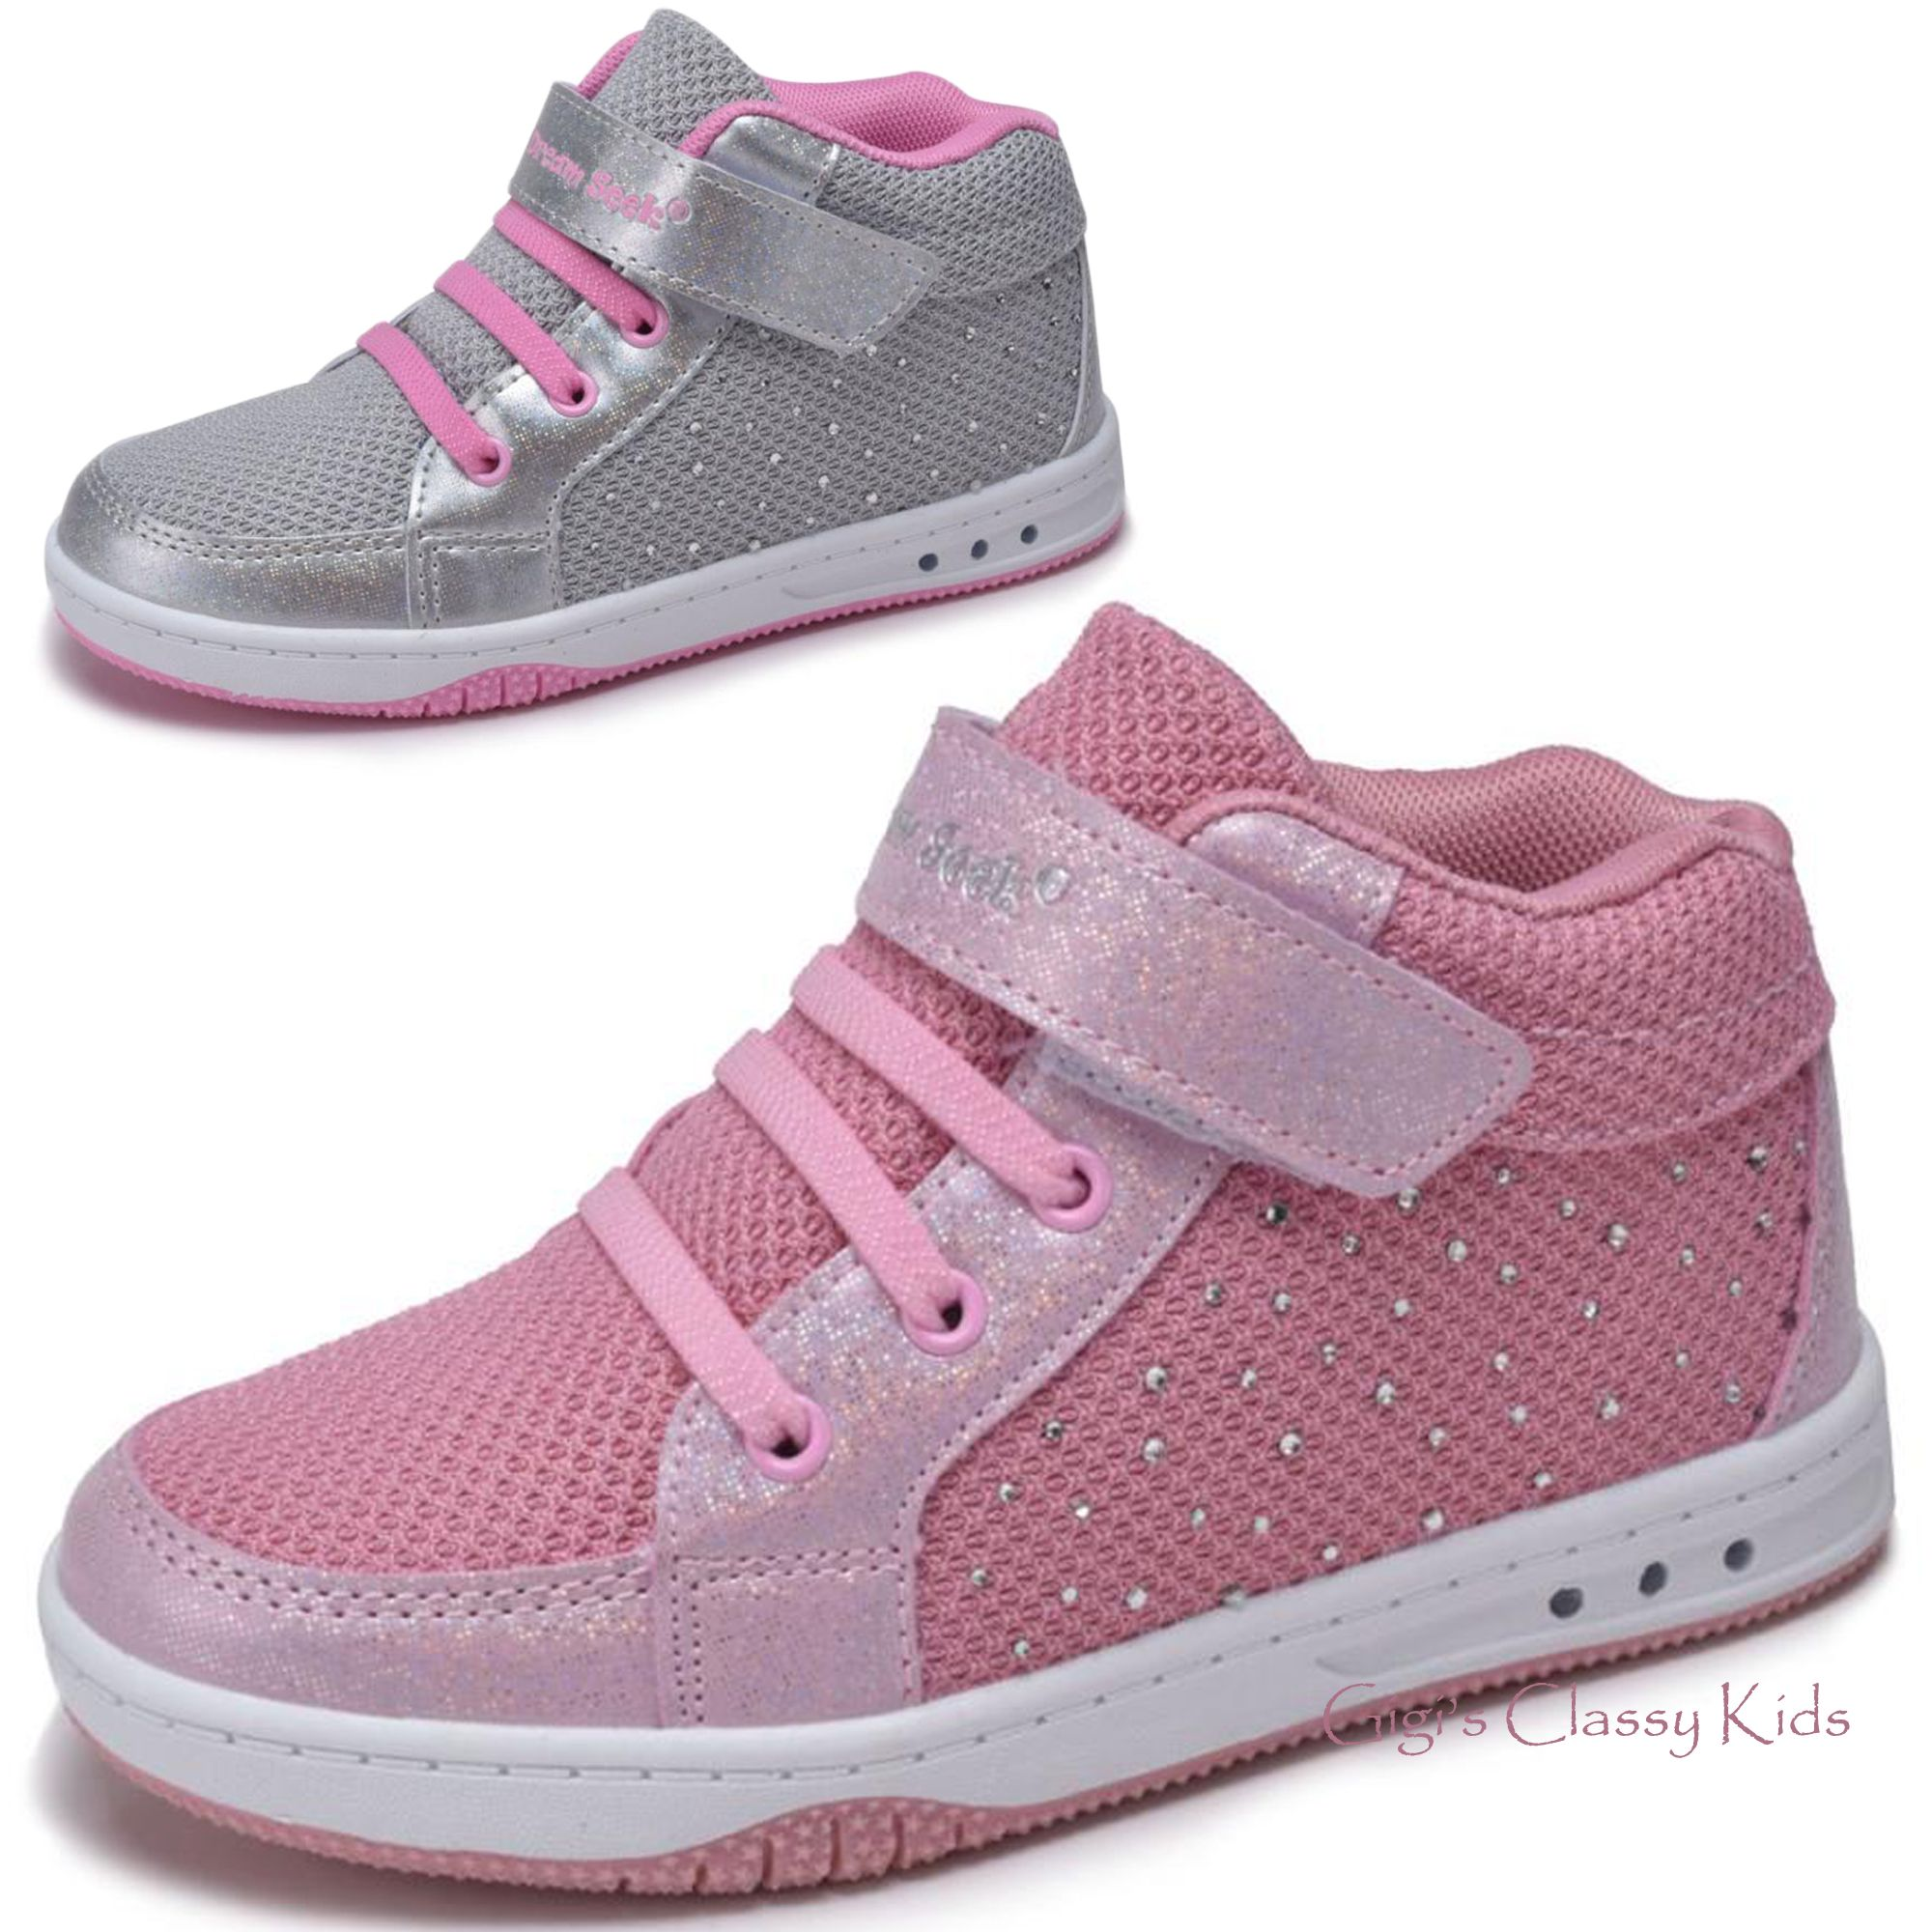 Girls Tennis Shoes High Top Glitter Sneakers Kids Youth Athletic Strap Casual Girls Tennis Shoes Glitter Sneakers Girls Shoes